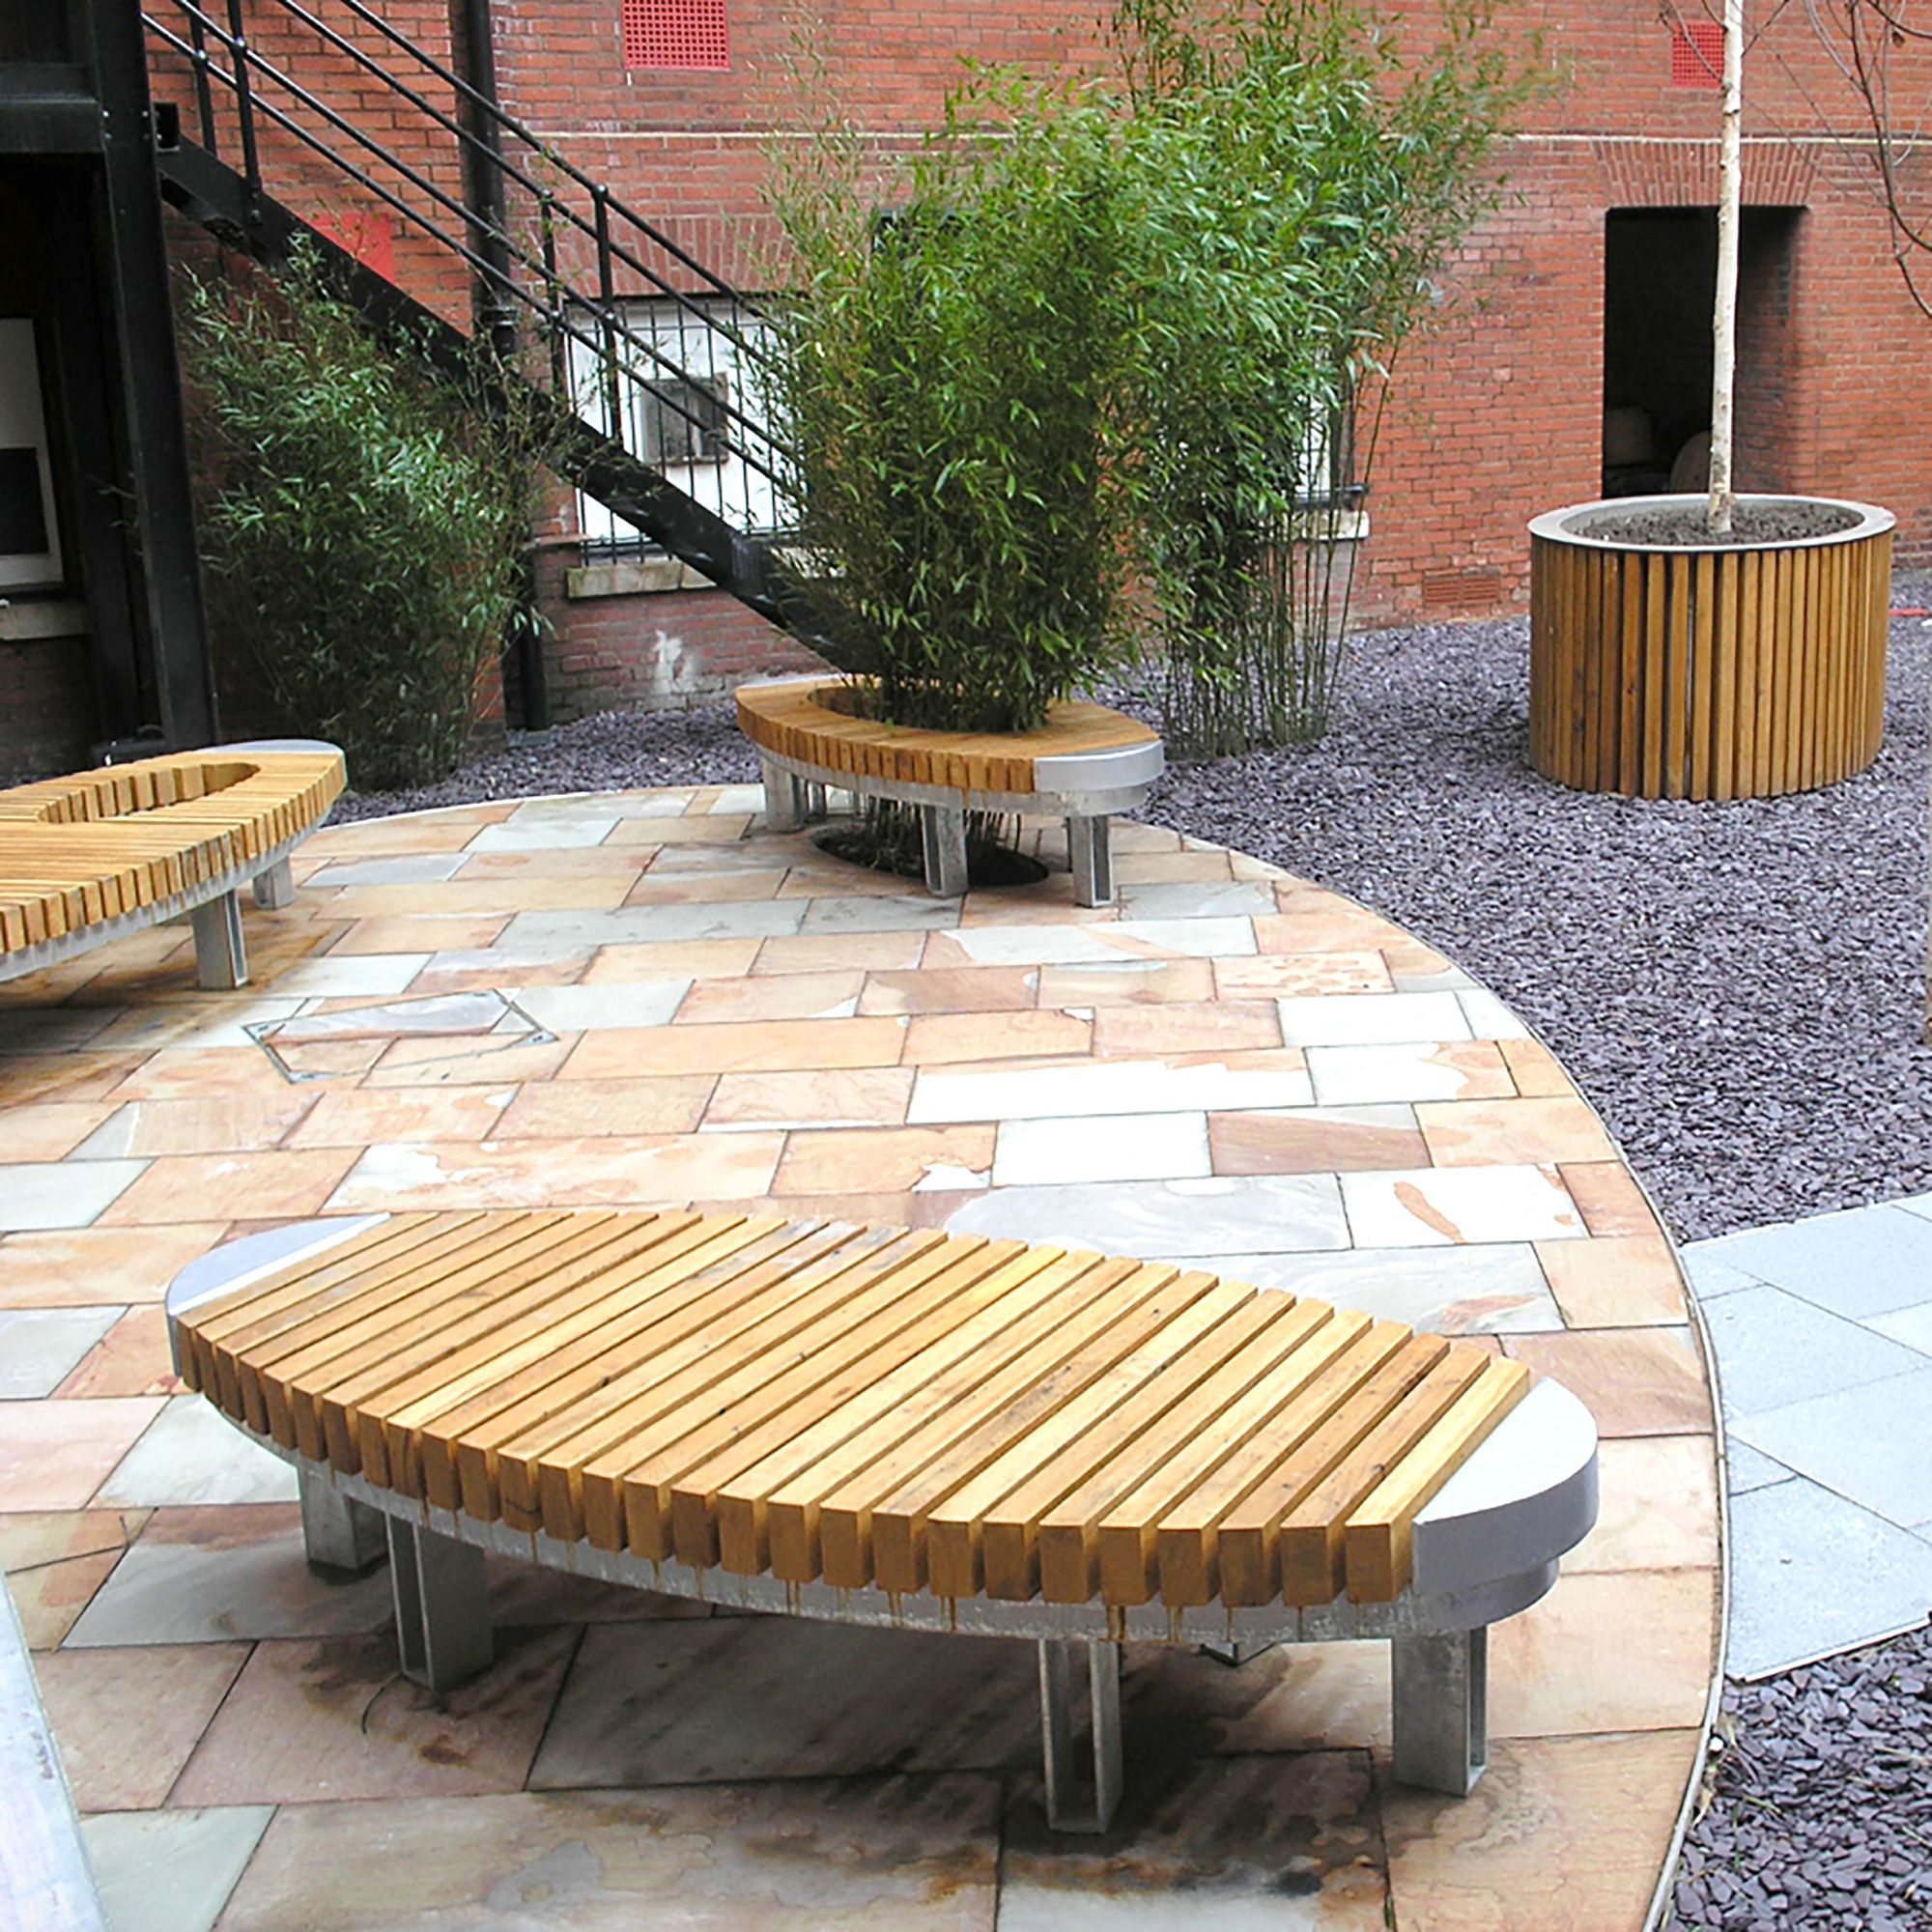 Lime Grove Bench Woodscape Urban furniture, Bench